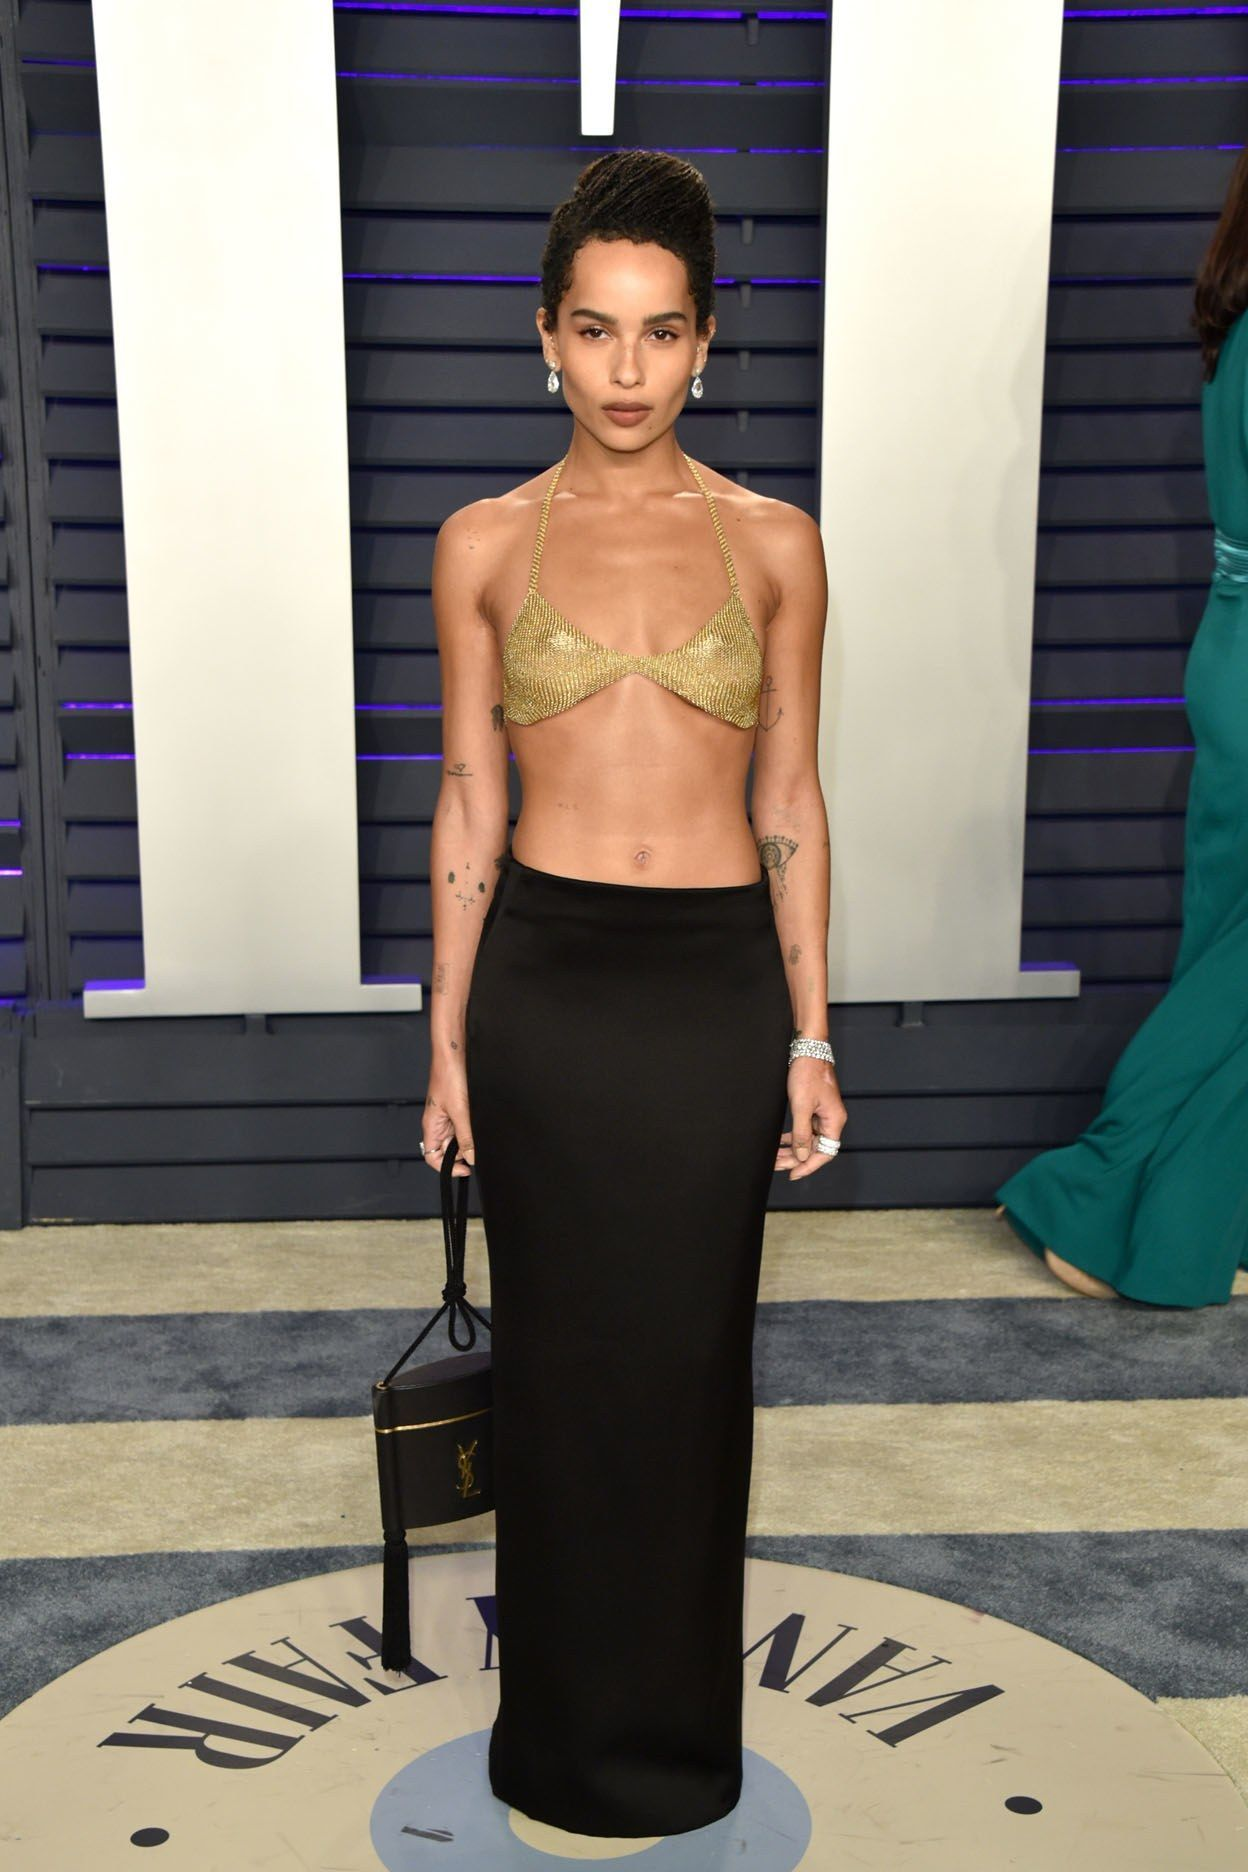 Zoë Kravitz's Best Style Moments #zoekravitzstyle Zoë Kravitz Style File: Vogue Charts Zoe Kravtiz's Most Stylish Moments | British Vogue #zoekravitzstyle Zoë Kravitz's Best Style Moments #zoekravitzstyle Zoë Kravitz Style File: Vogue Charts Zoe Kravtiz's Most Stylish Moments | British Vogue #zoekravitz